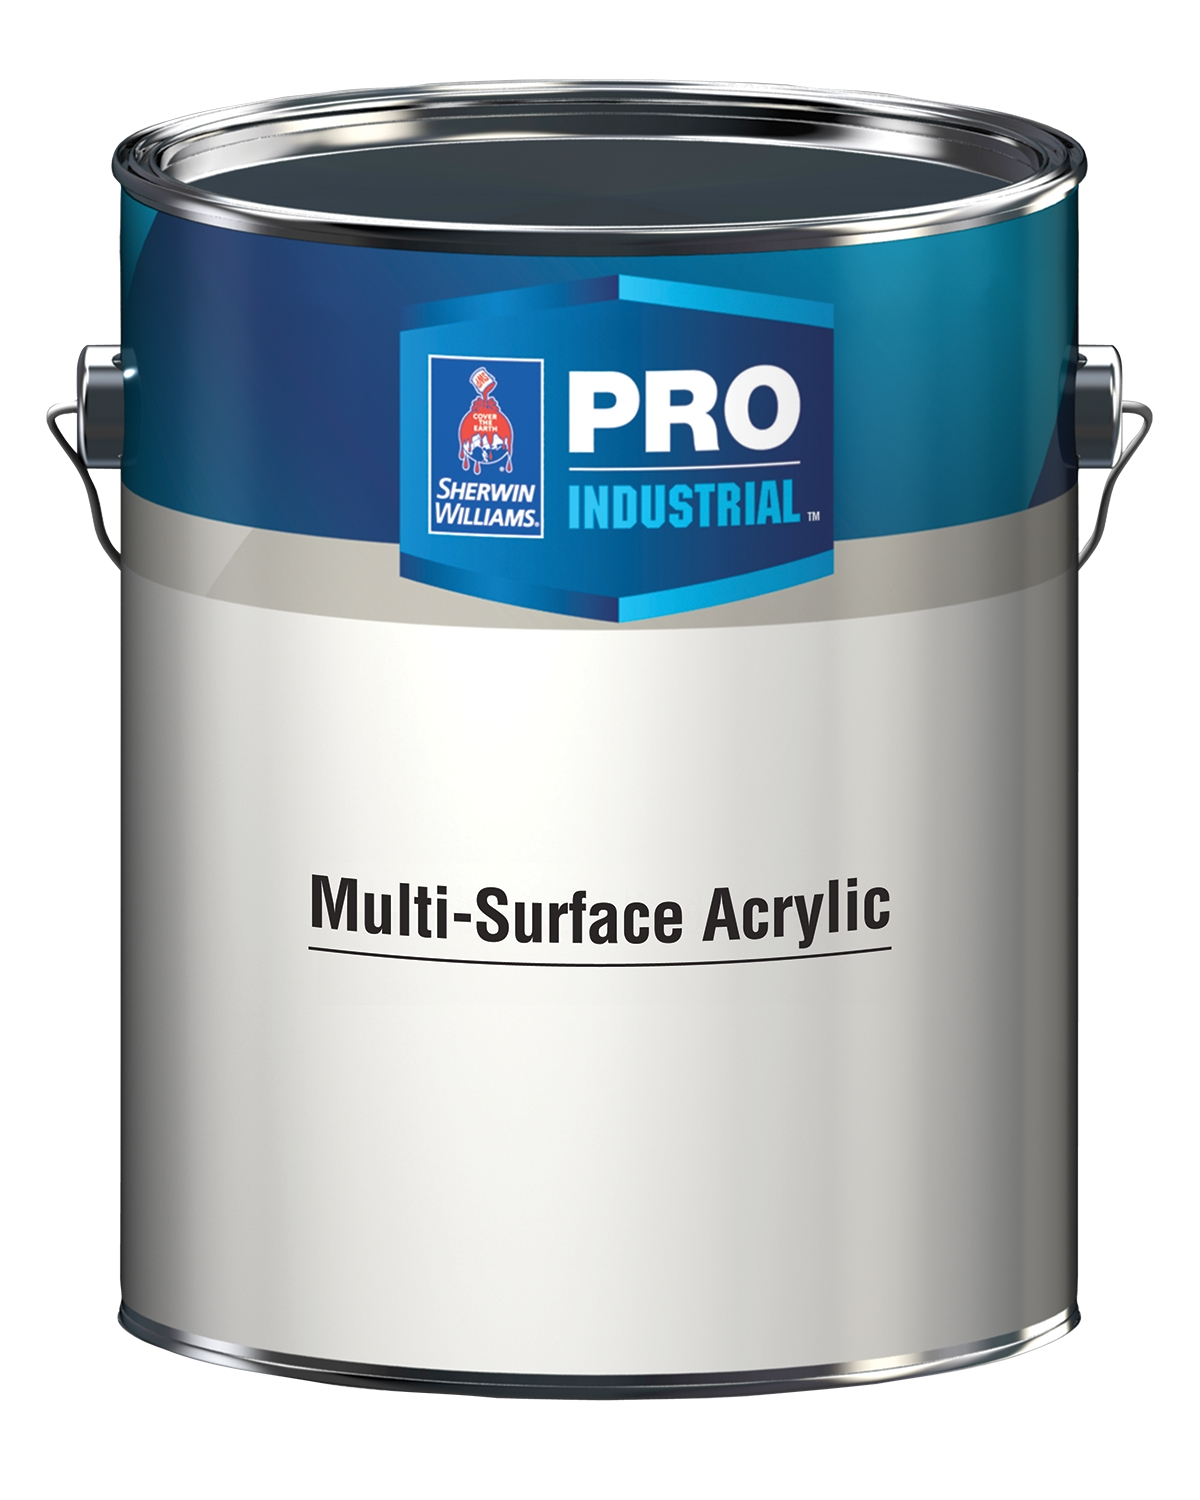 Pro Industrial™ Multi-Surface Acrylic